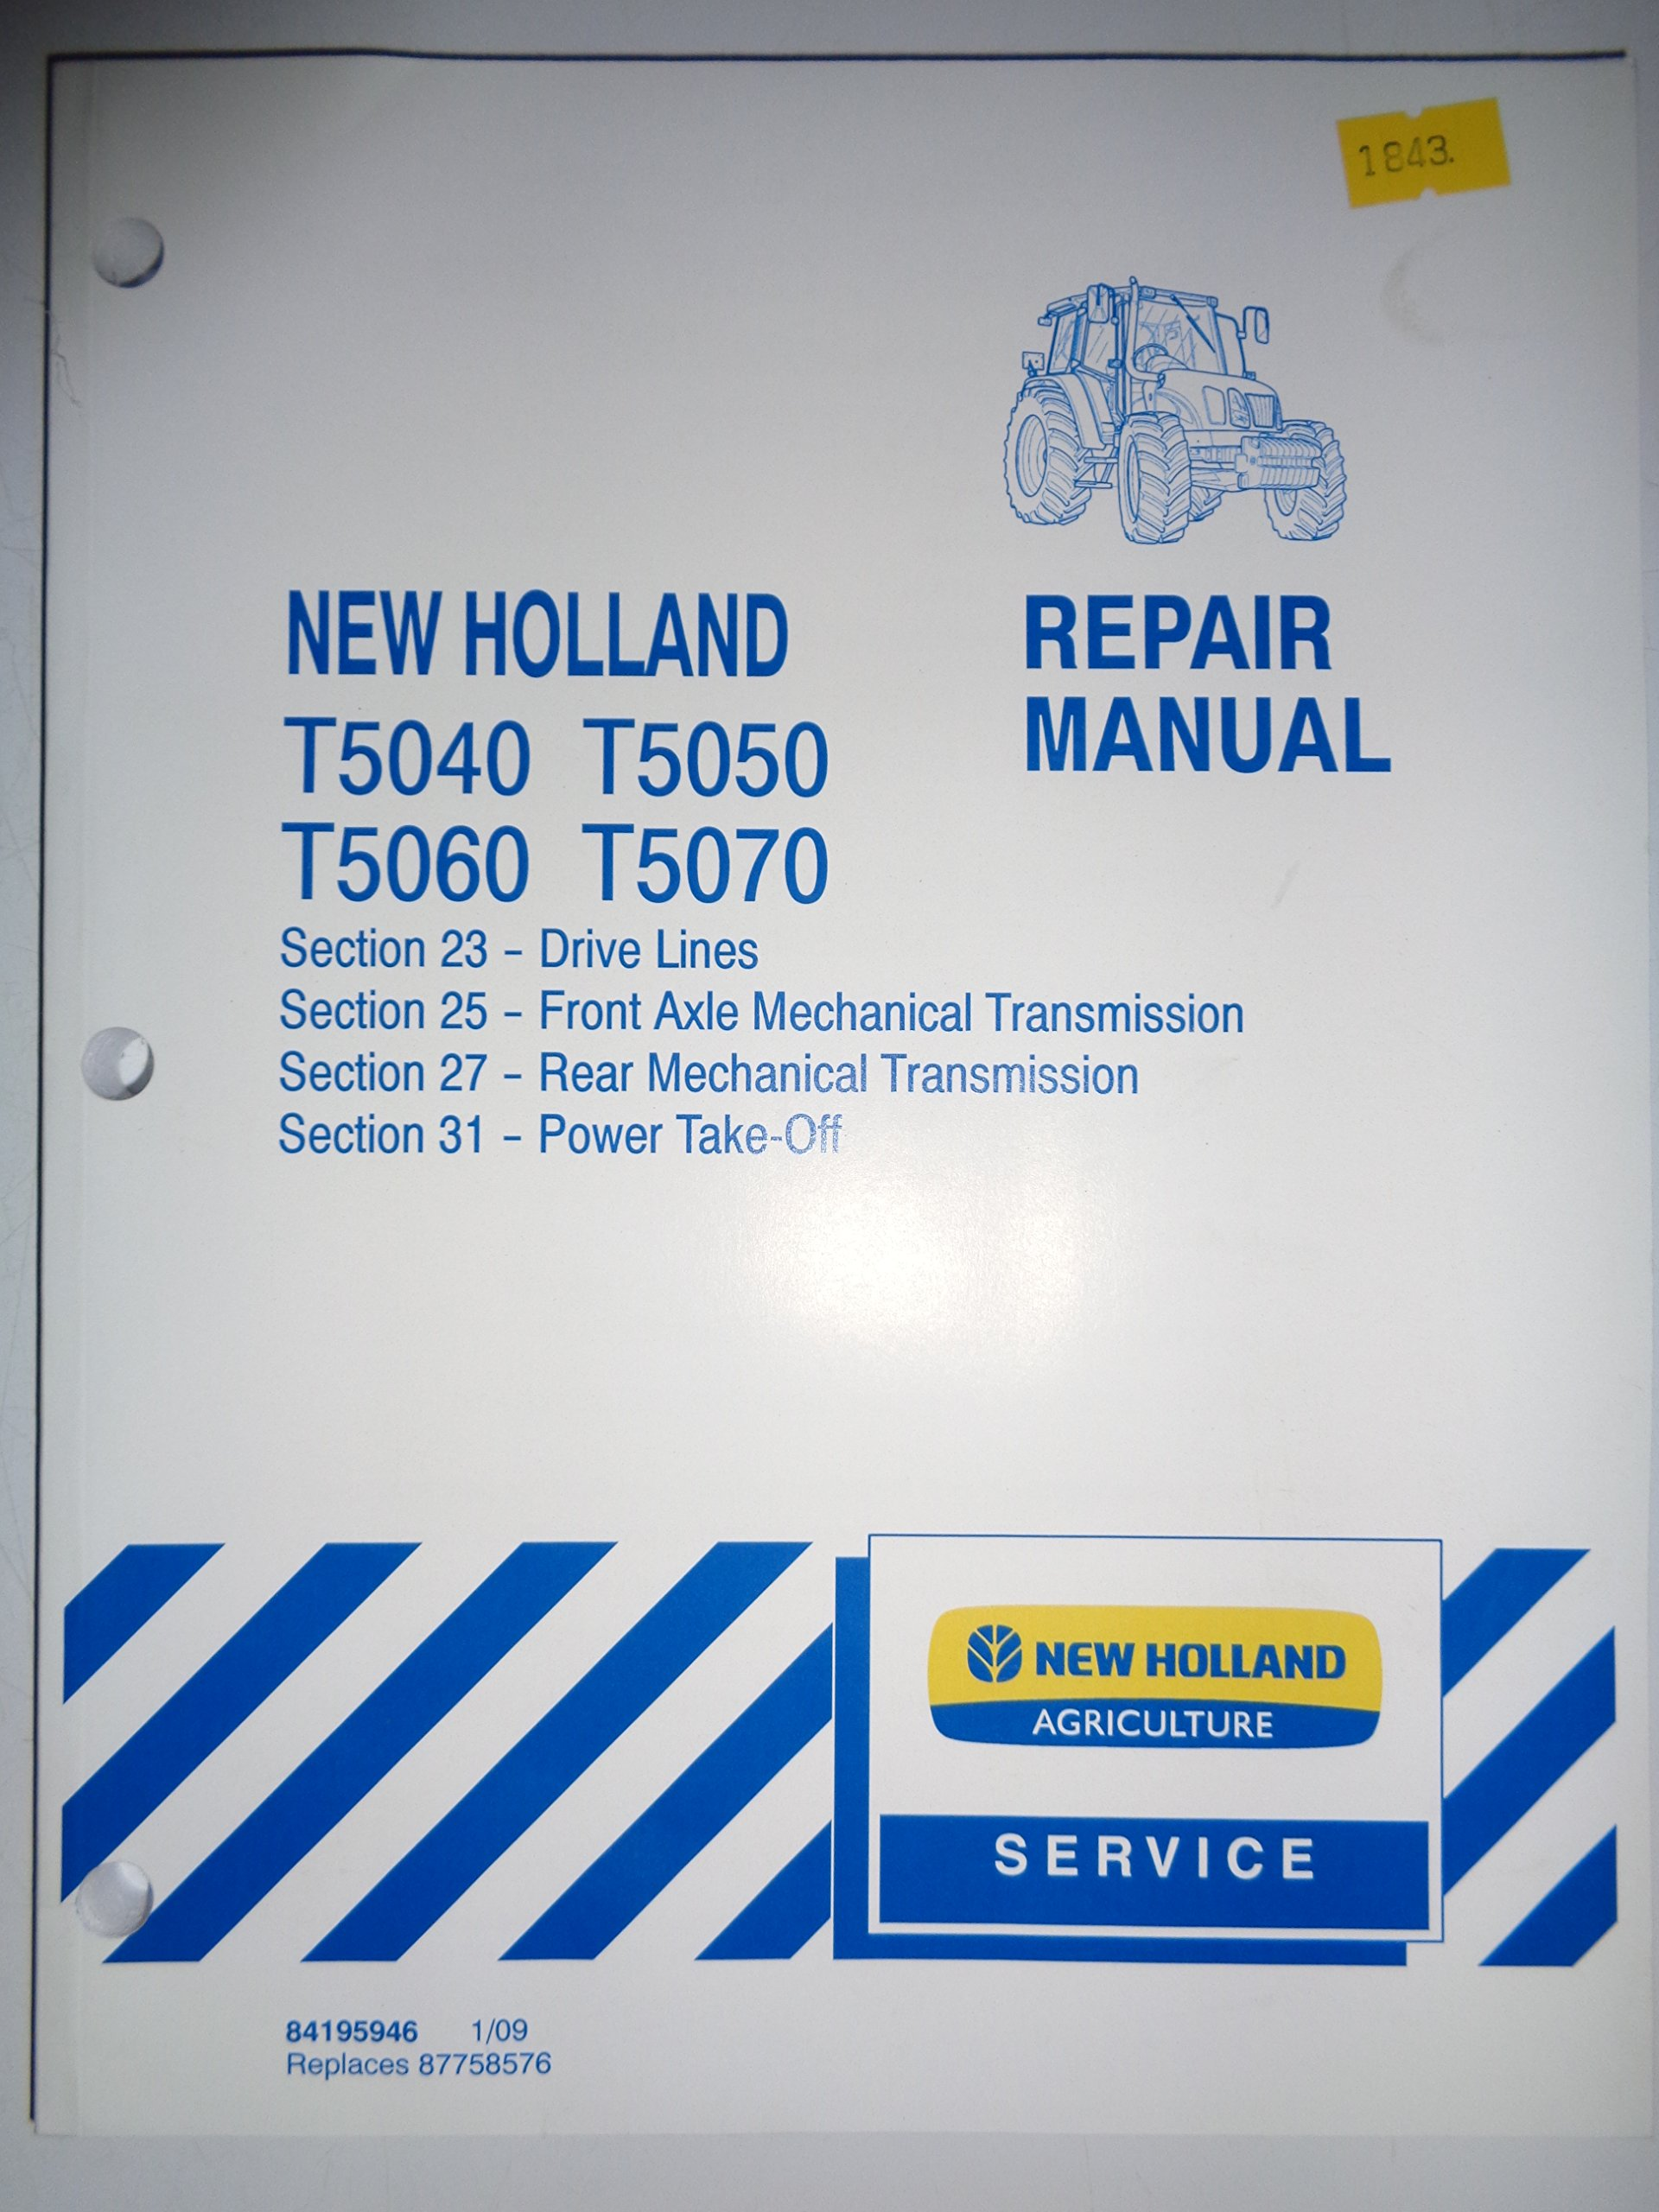 New Holland T5040 T5050 T5060 T5070 Tractor DRIVE LINES, TRANSMISSION, PTO Service  Manual 1/09: New Holland: Amazon.com: Books